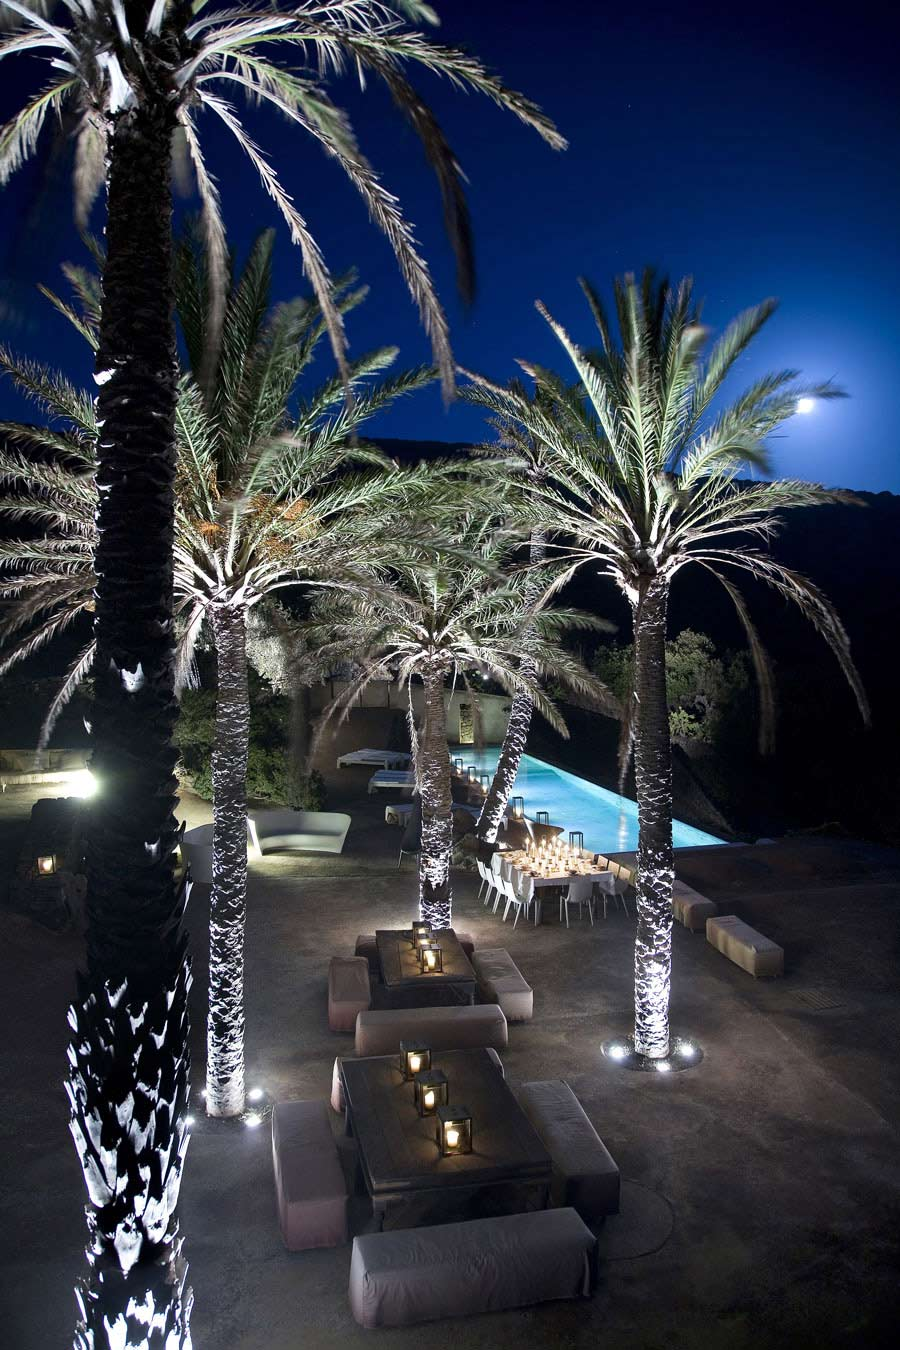 Evening Outdoor Dining, Pool Lights, Casa Albanese, Island of Pantelleria, Italy by ASA Studio Albanese